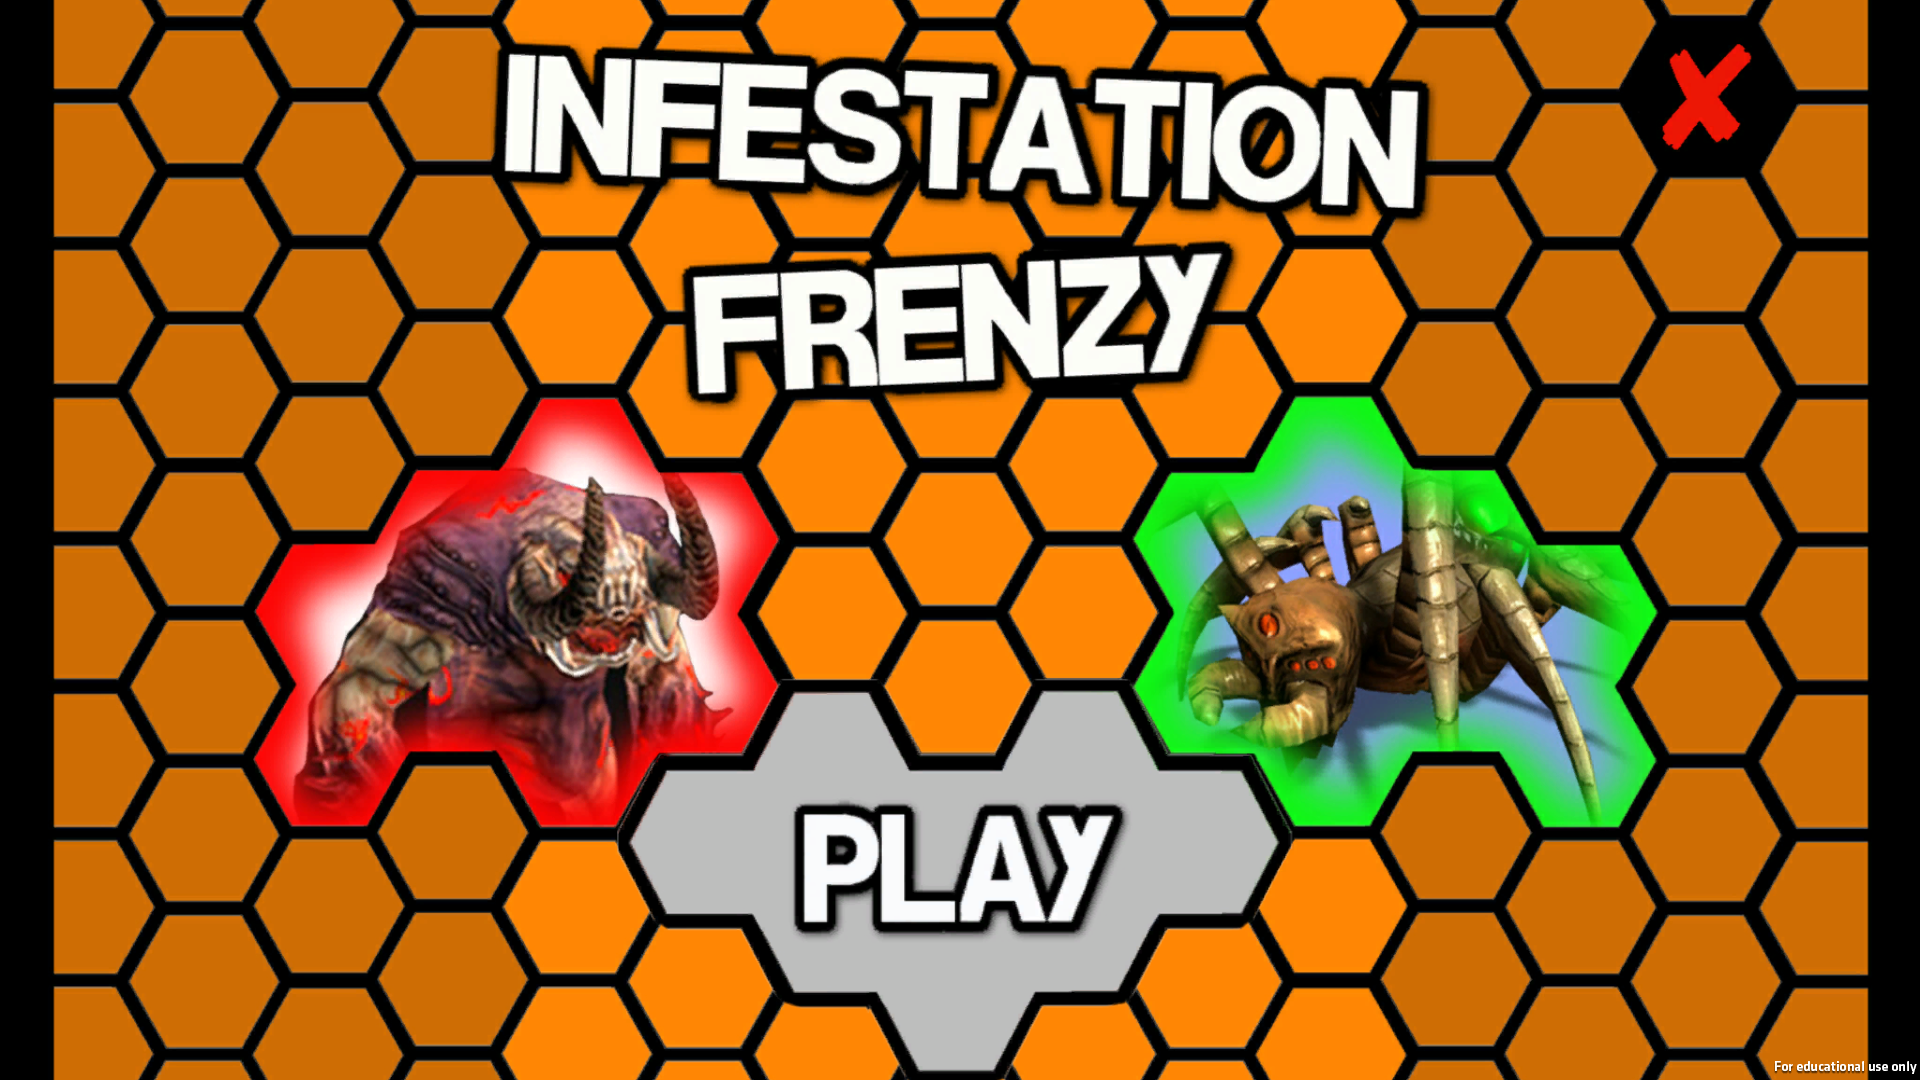 Infestation Frenzy